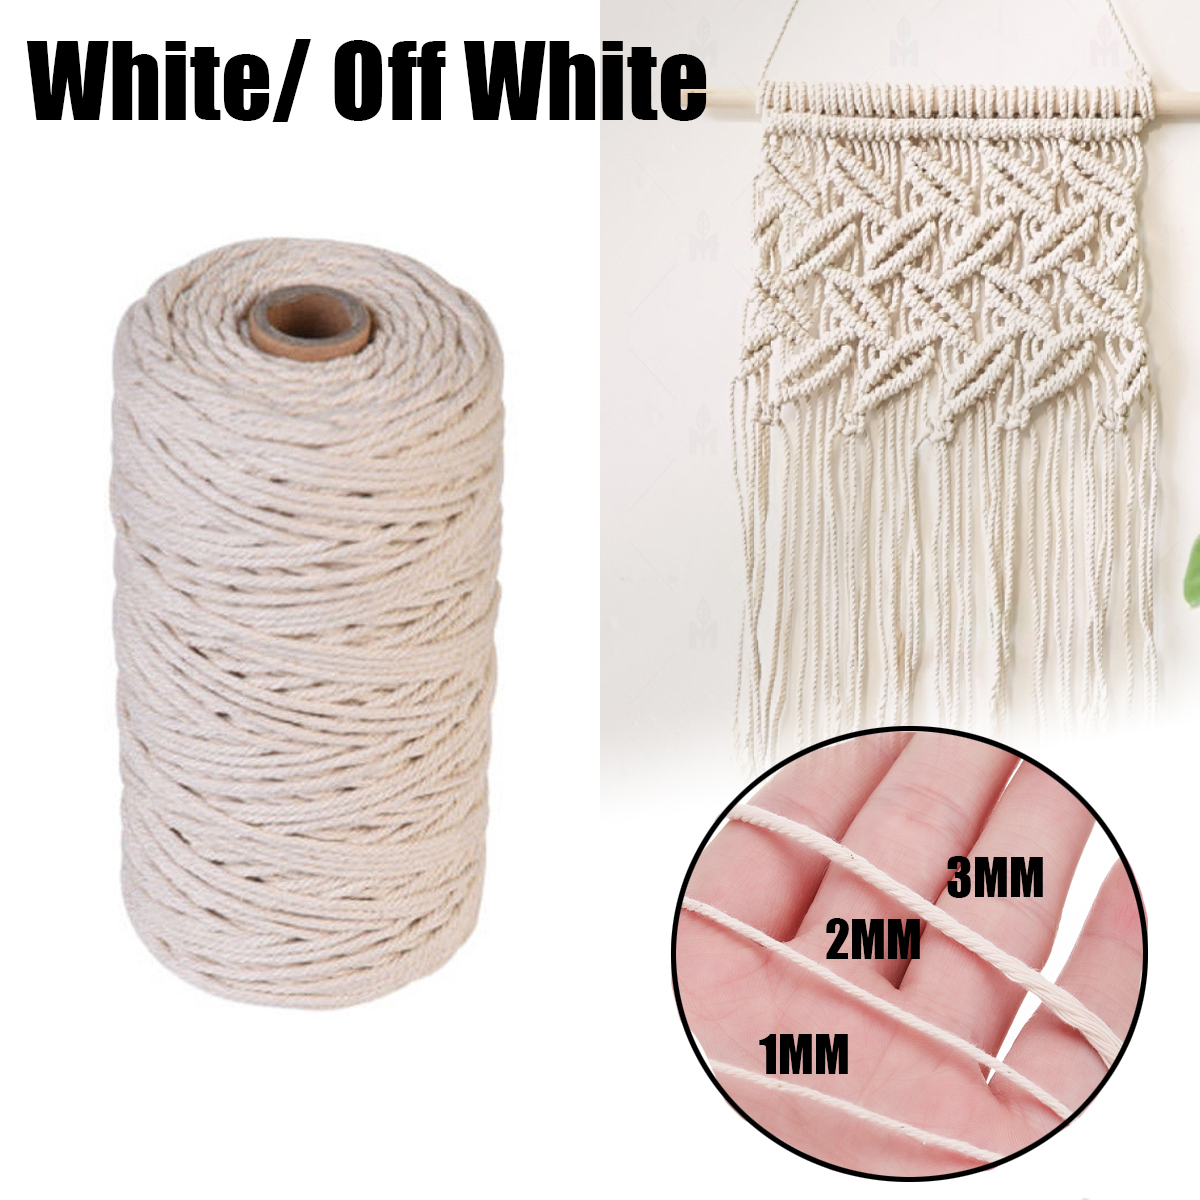 ALI shop ...  ... 32885065889 ... 3 ... 3 Size 1/2/3mm Braided Soft Beige Twisted Cotton Rope Cord Craft Macrame String DIY Handmade Tying Thread Macrame Cord Rope   ...